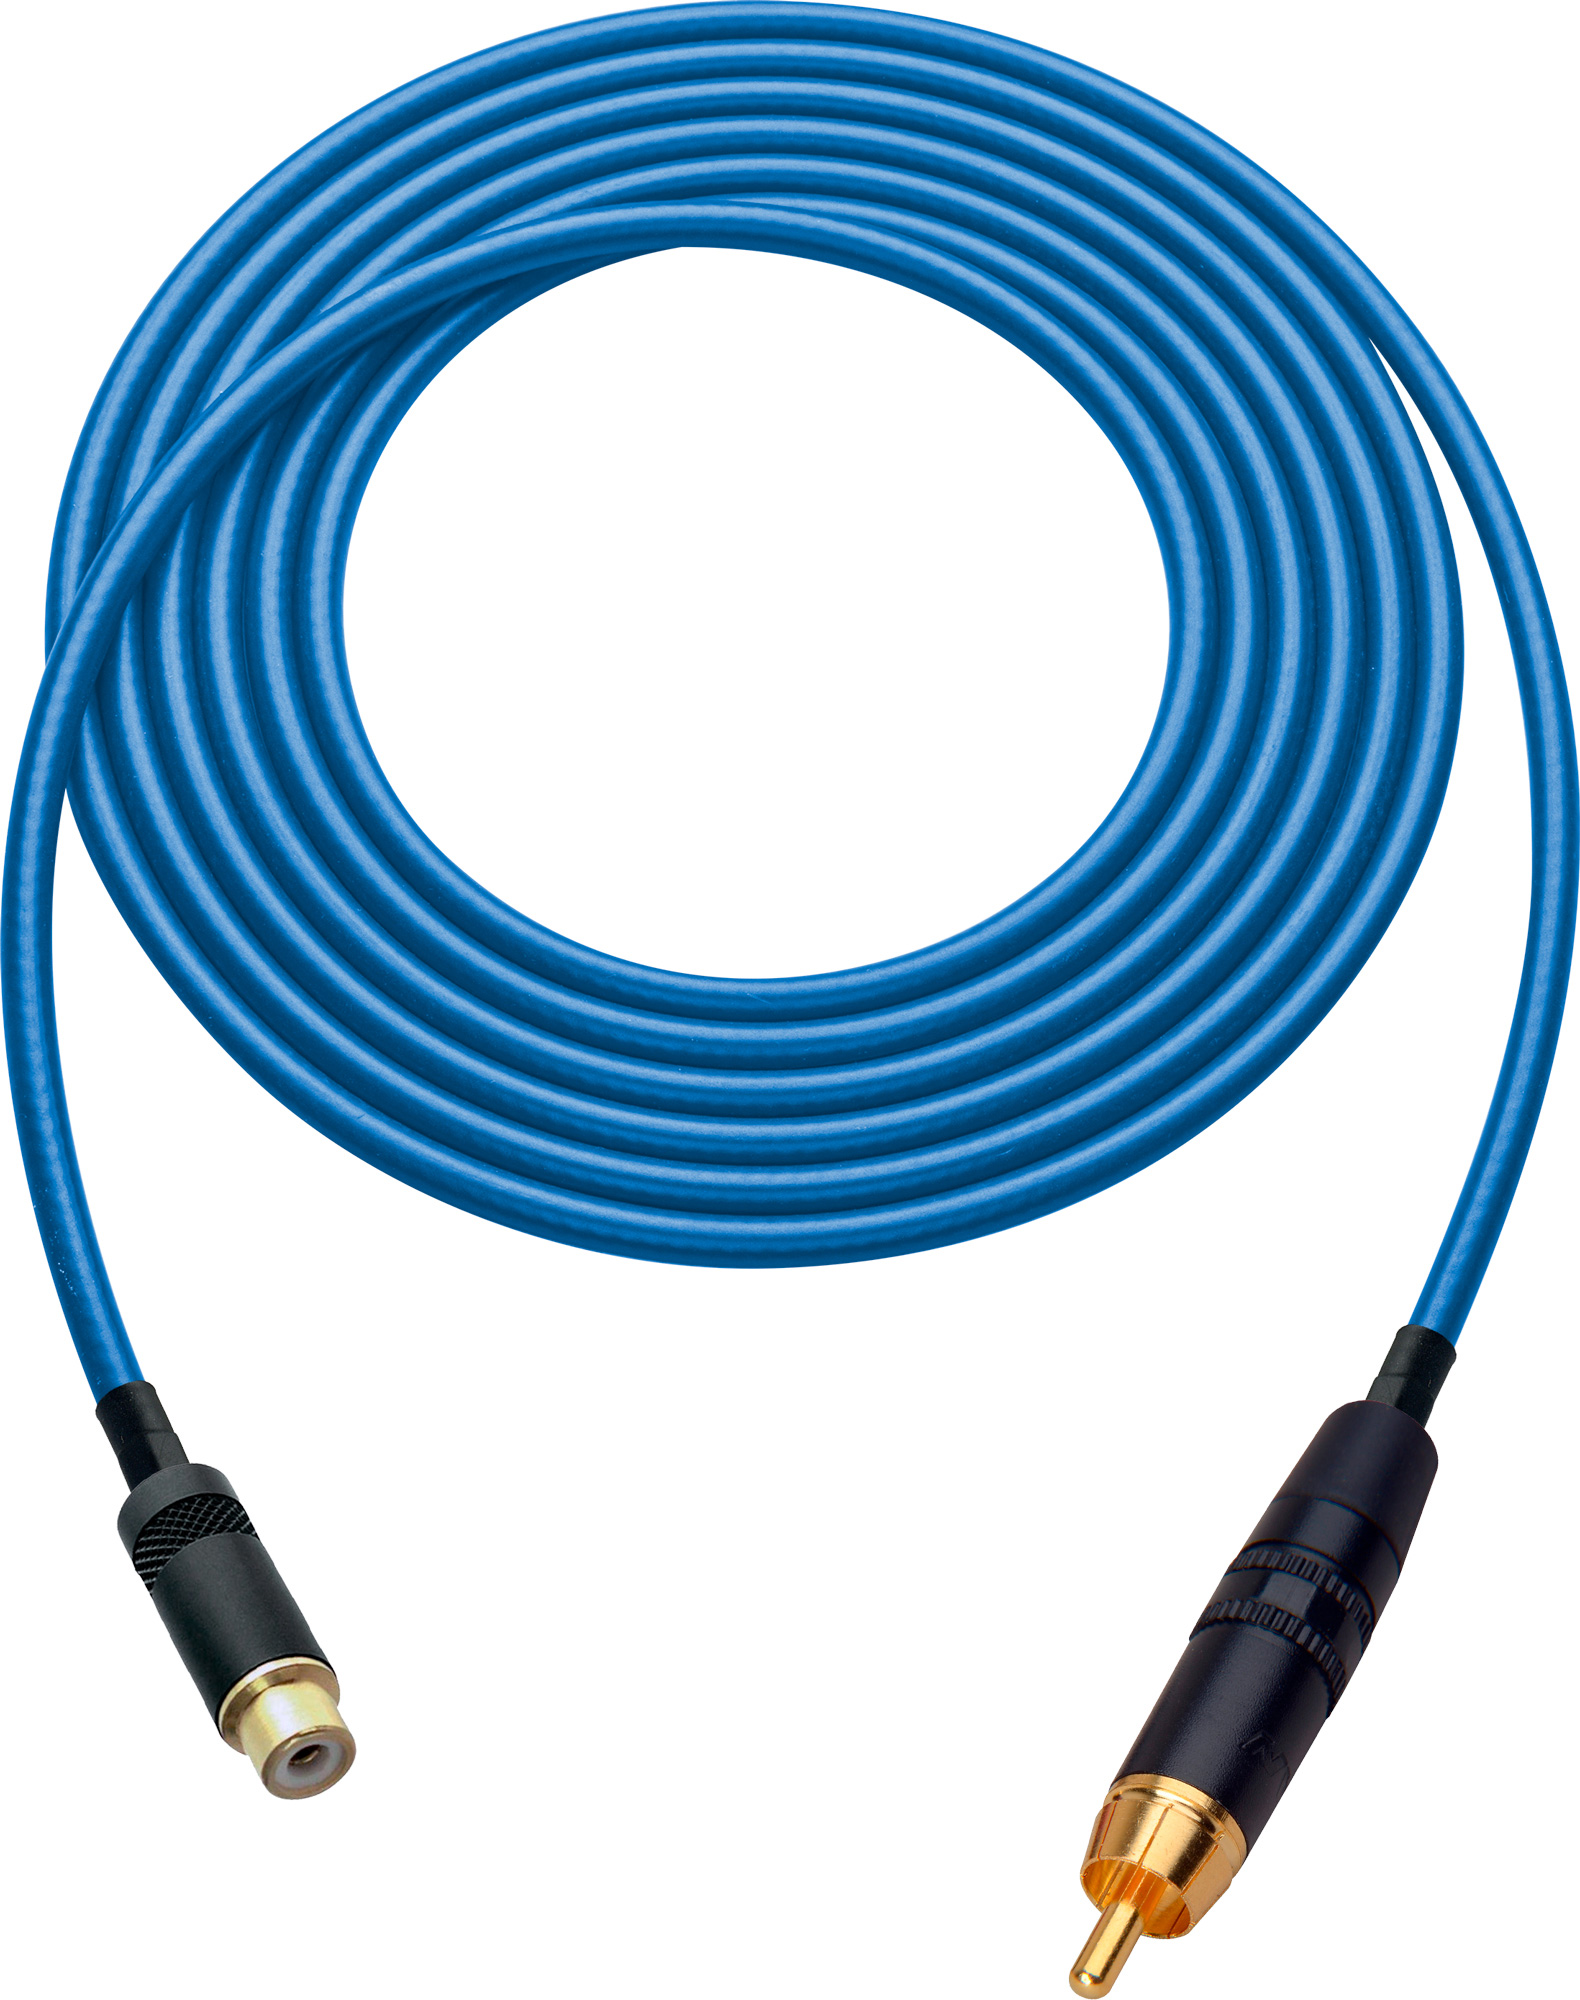 Laird HDAV-EXT-10-BE Belden 1505A RCA M to F Extension Cable For Audio or HD Video - 10 Foot Blue